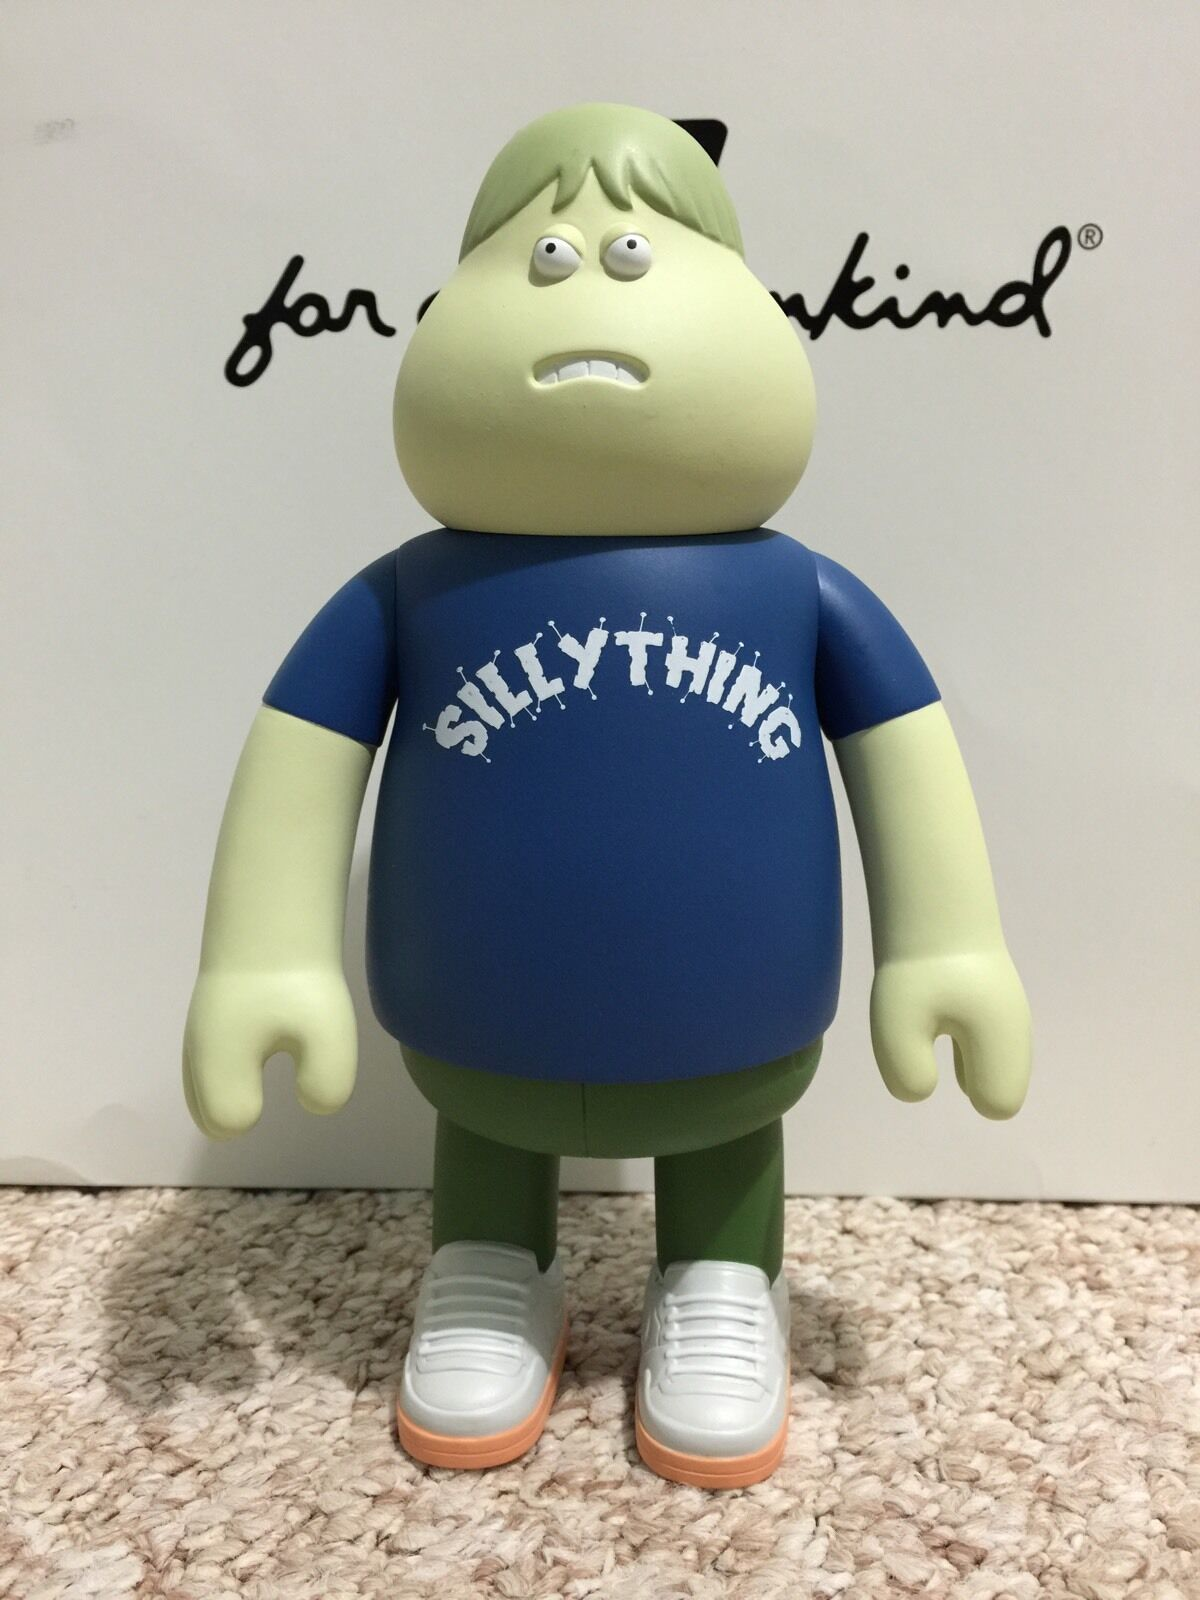 James Jarvis LEON Silly Thing blueE Vinyl Toy Figure Amos Toy Sealed Silas Stussy